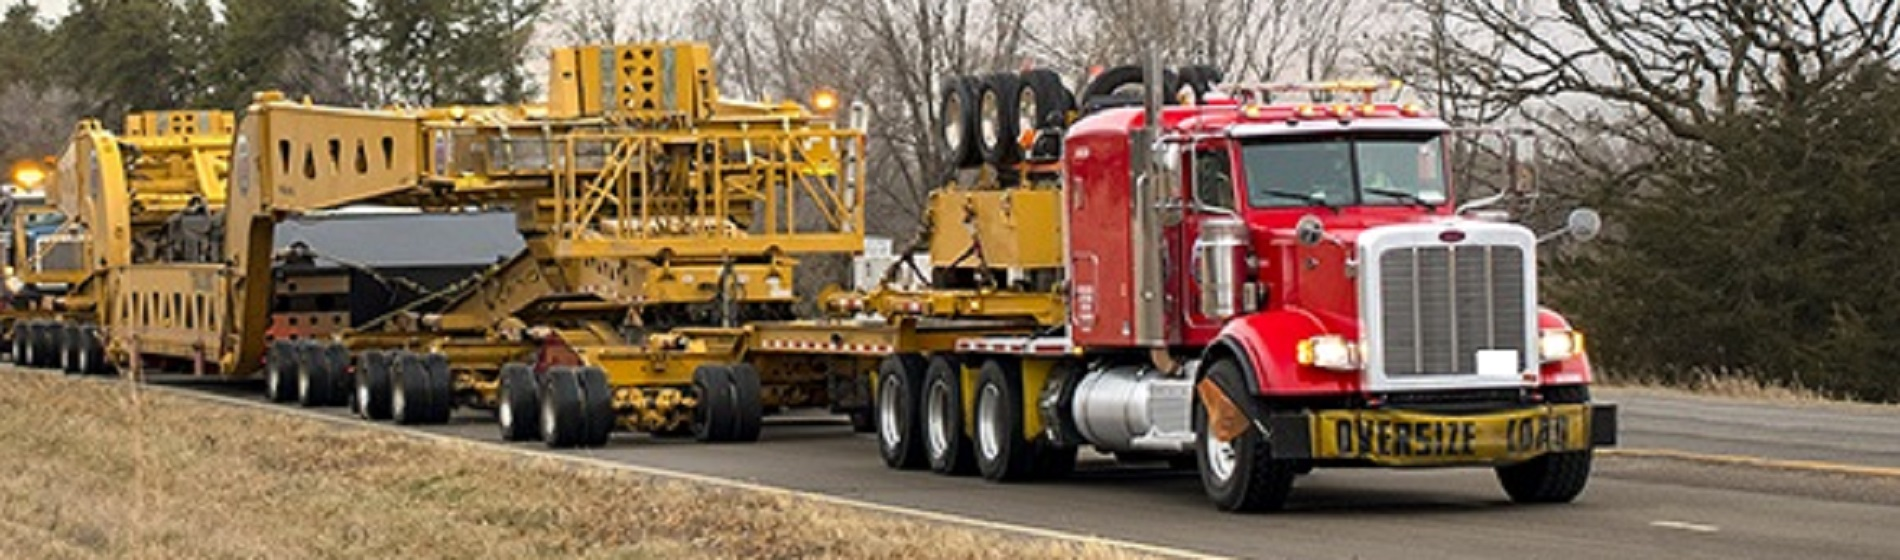 heavy equipment loaded on trailer hauled by truck